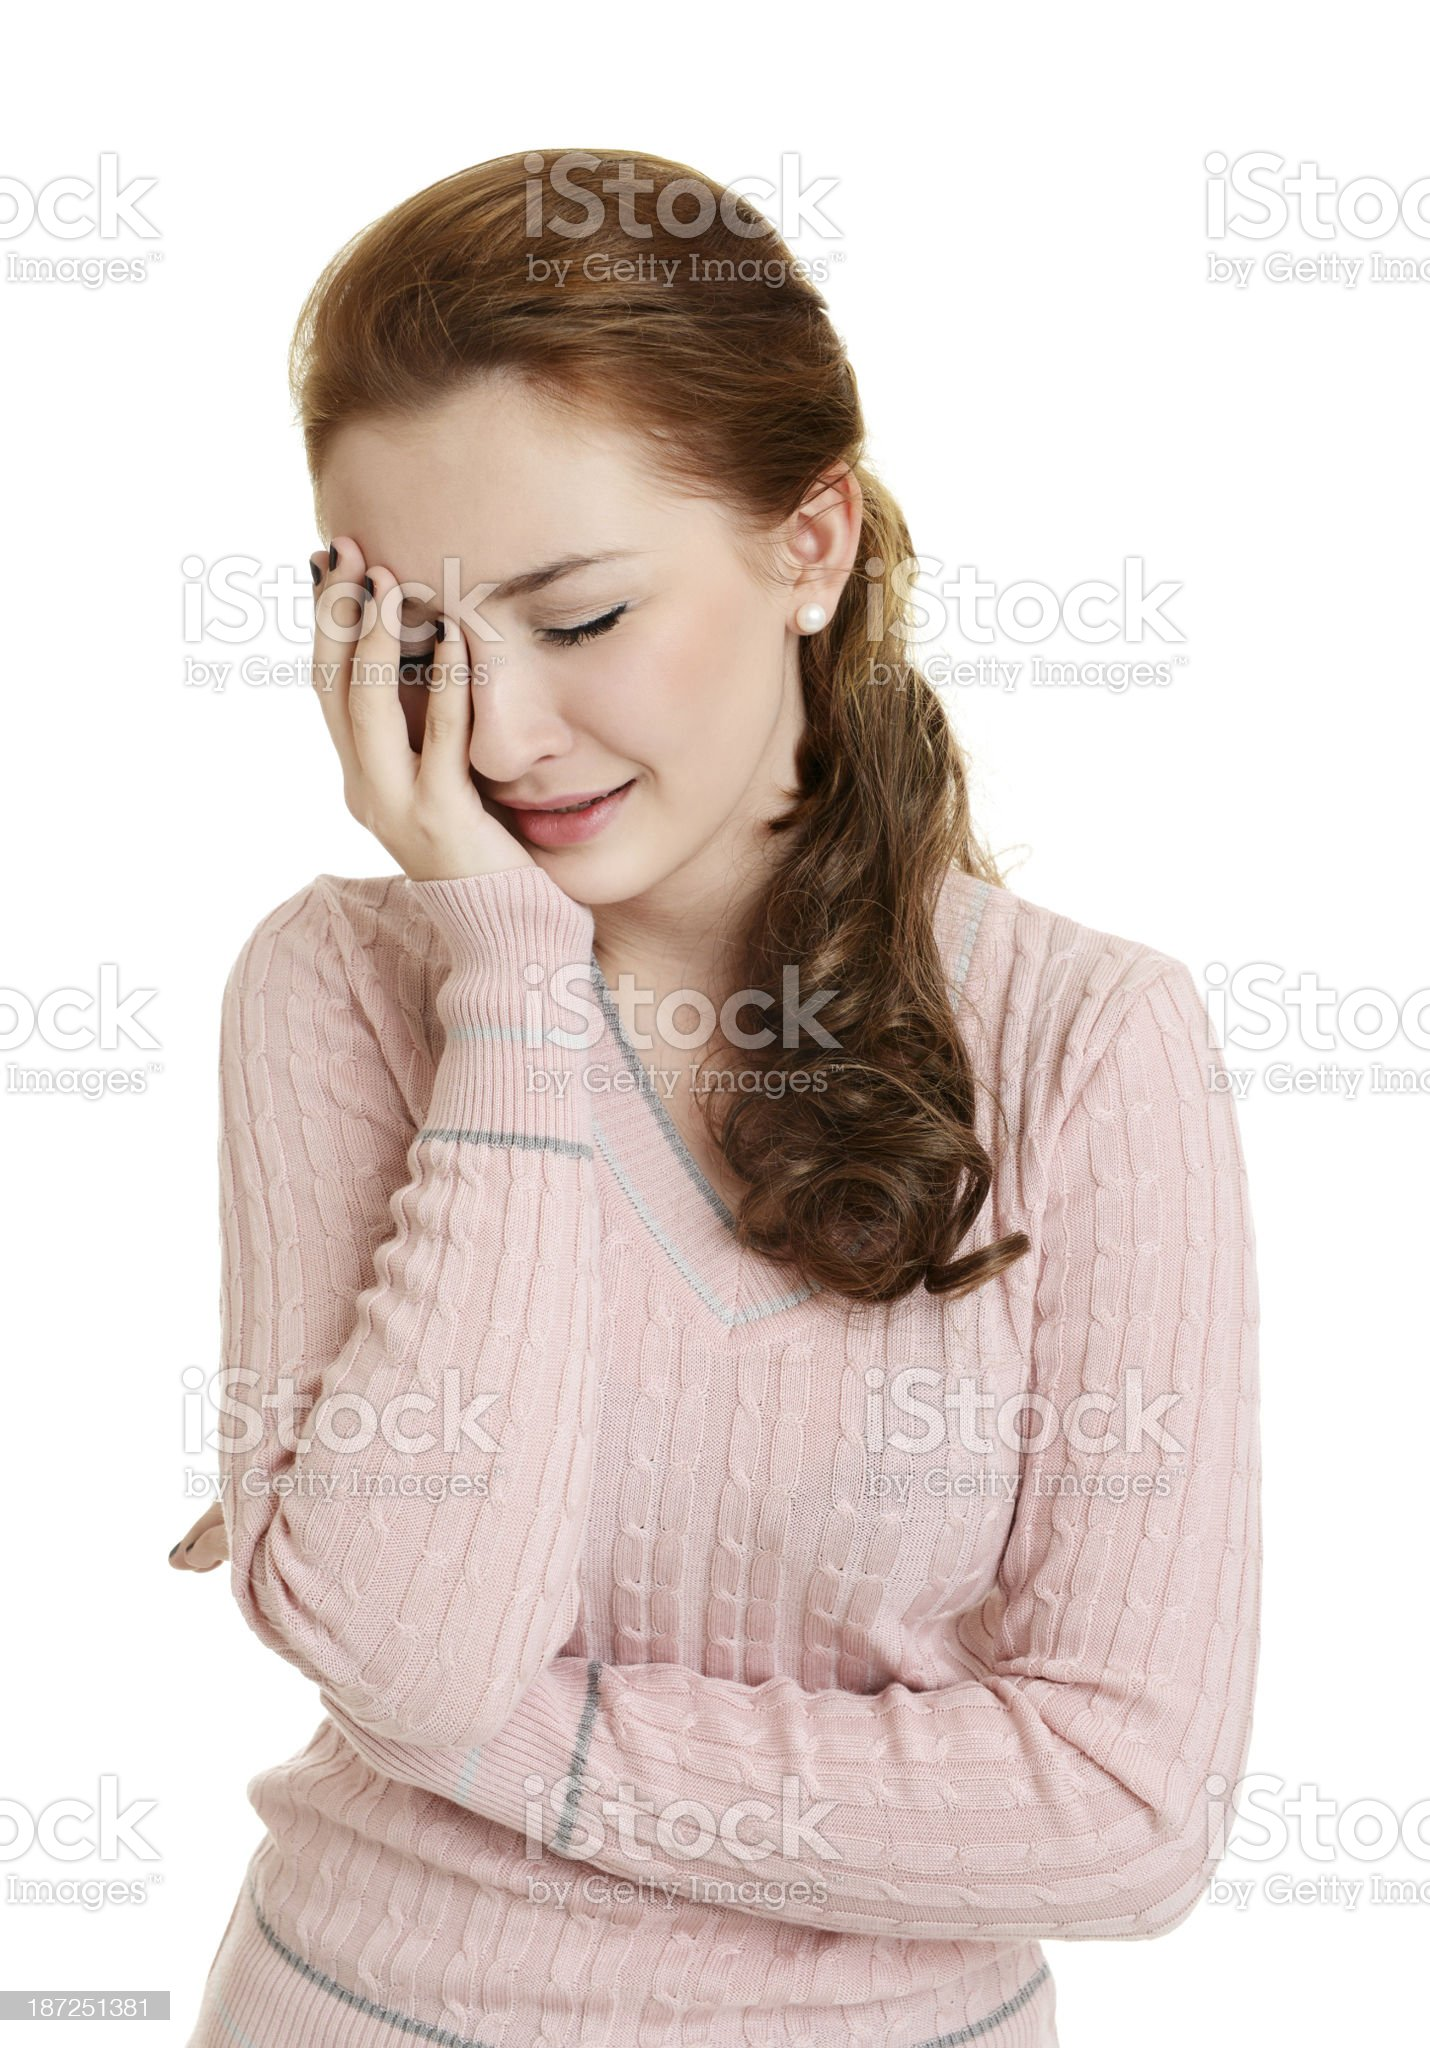 girl posing on a white background royalty-free stock photo